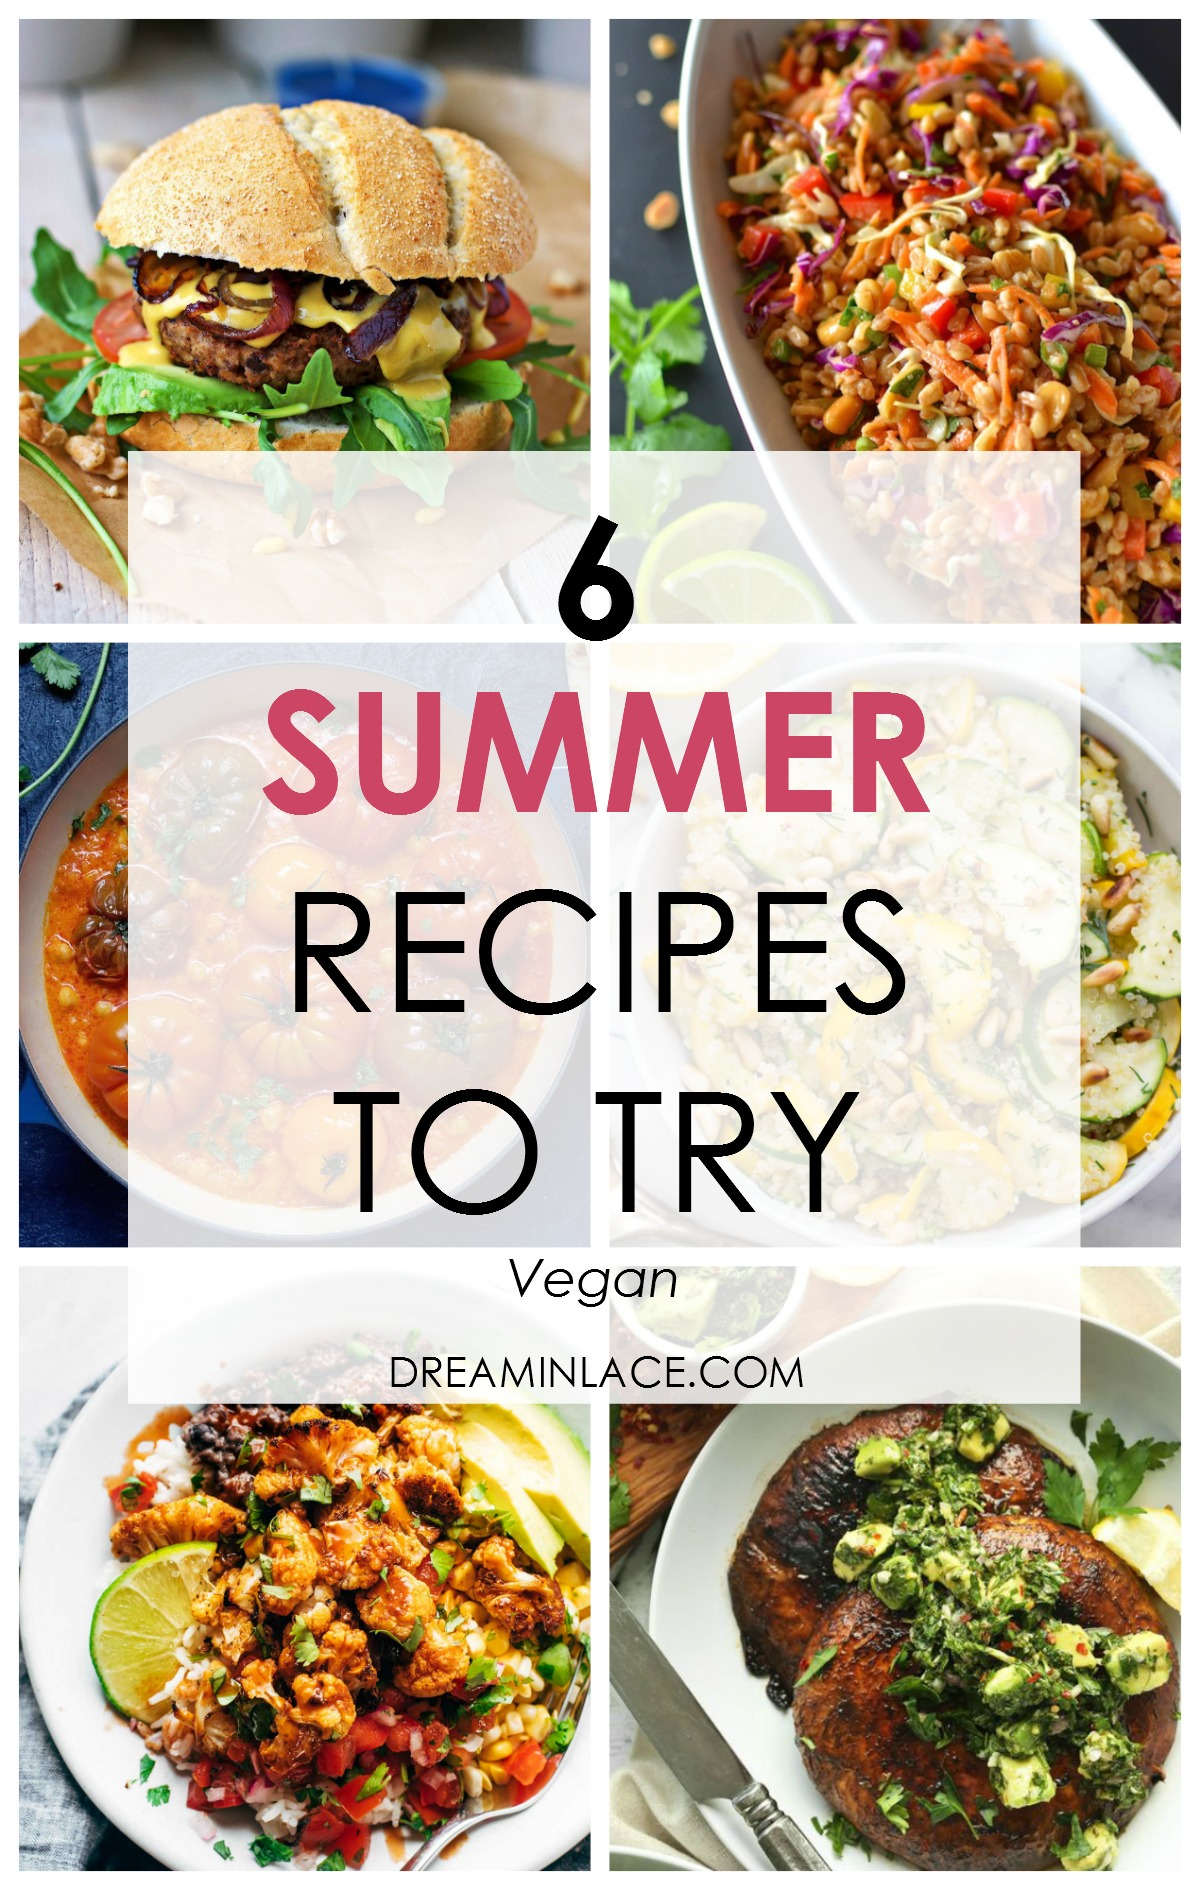 6 Vegan Summer Recipes to Try I DreaminLace.com #Vegan #SummerRecipes